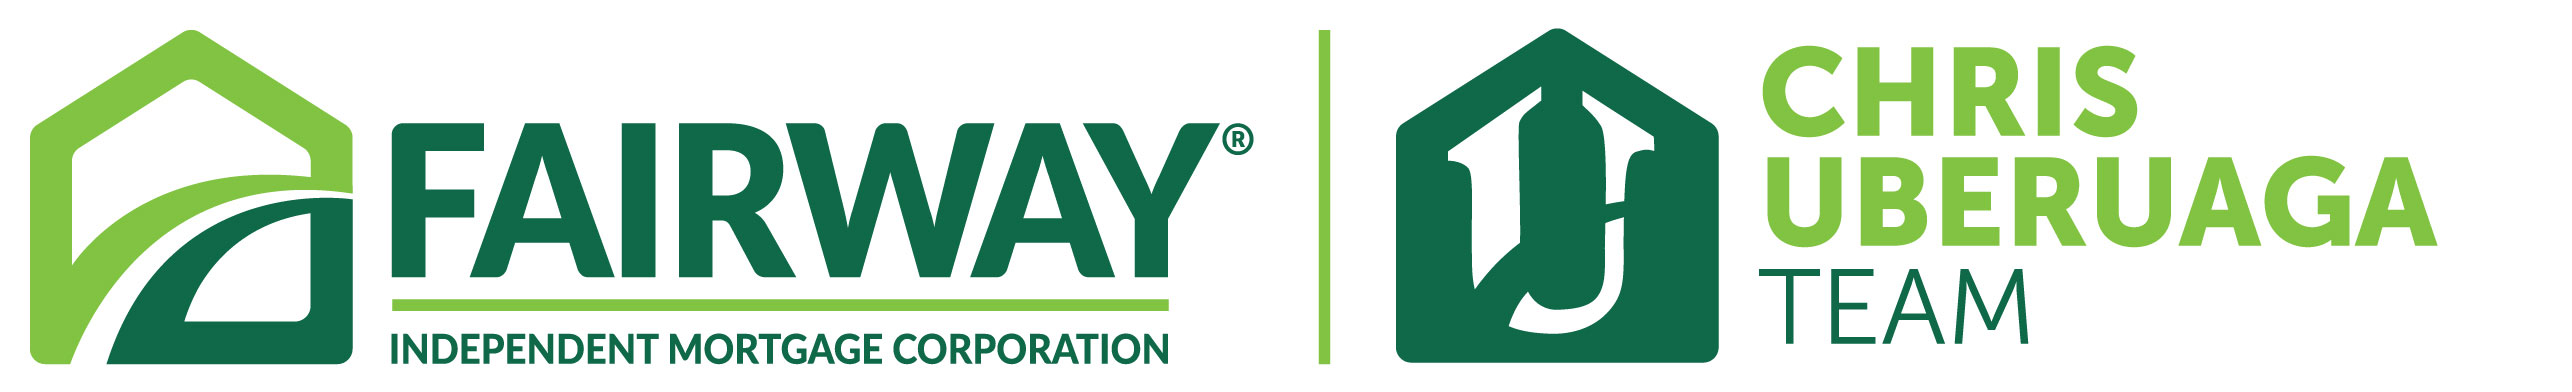 Chris Uberuaga | Fairway Independent Mortgage Corporation | Logo